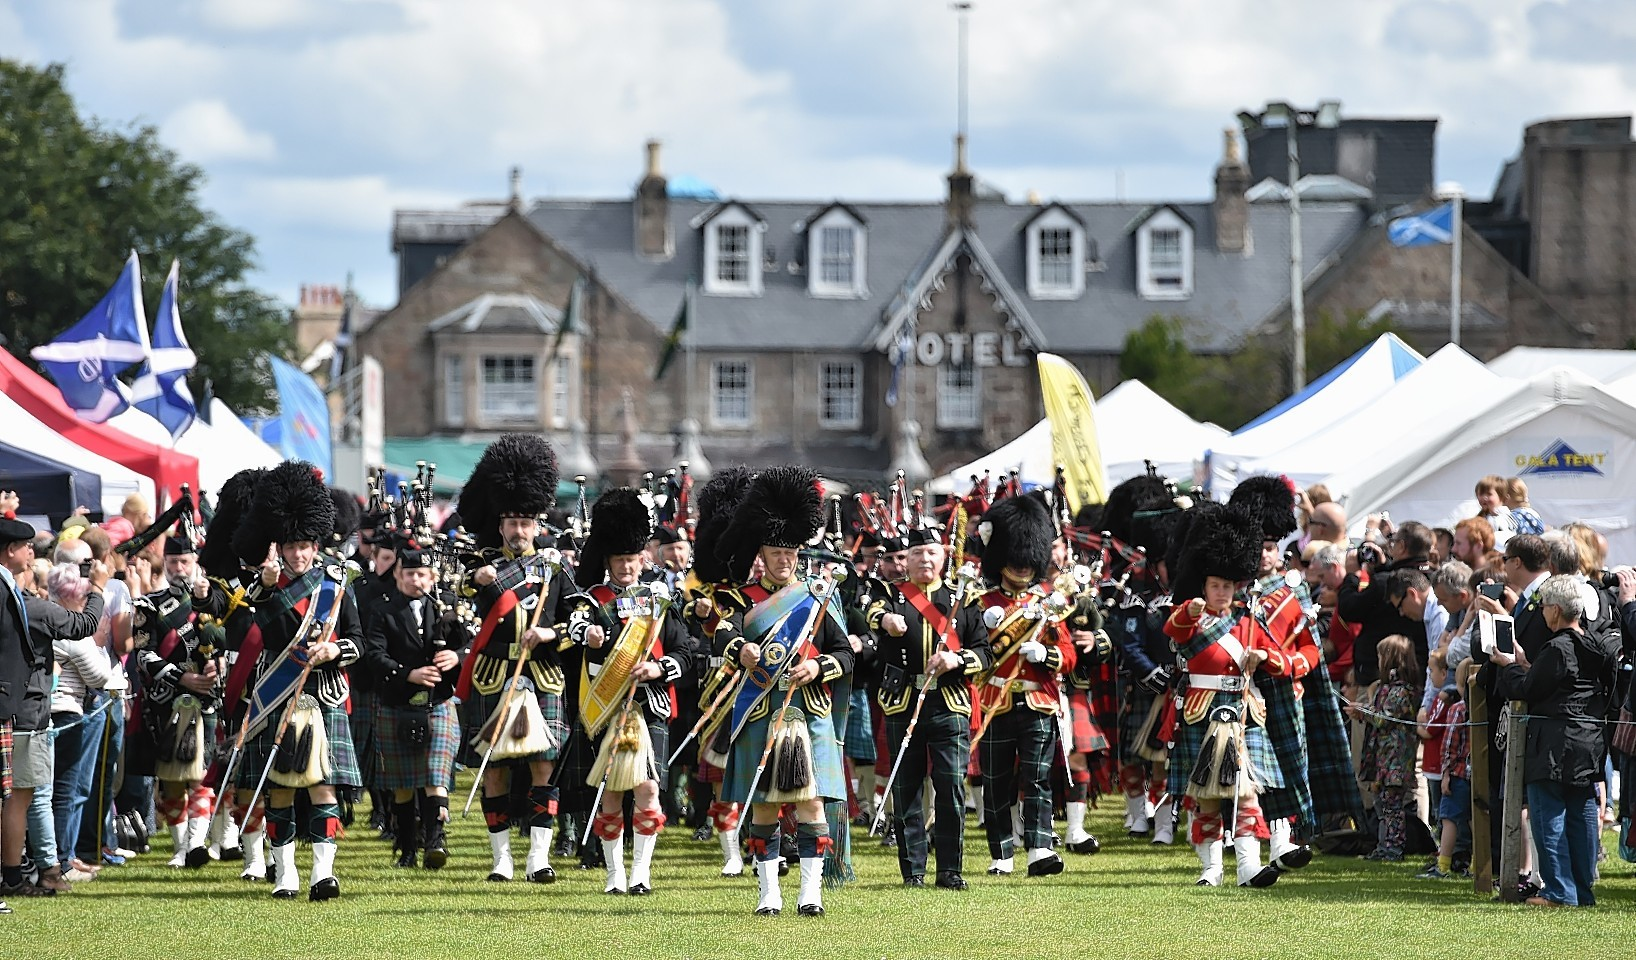 Bobbies will become a rarer sight at Highland games